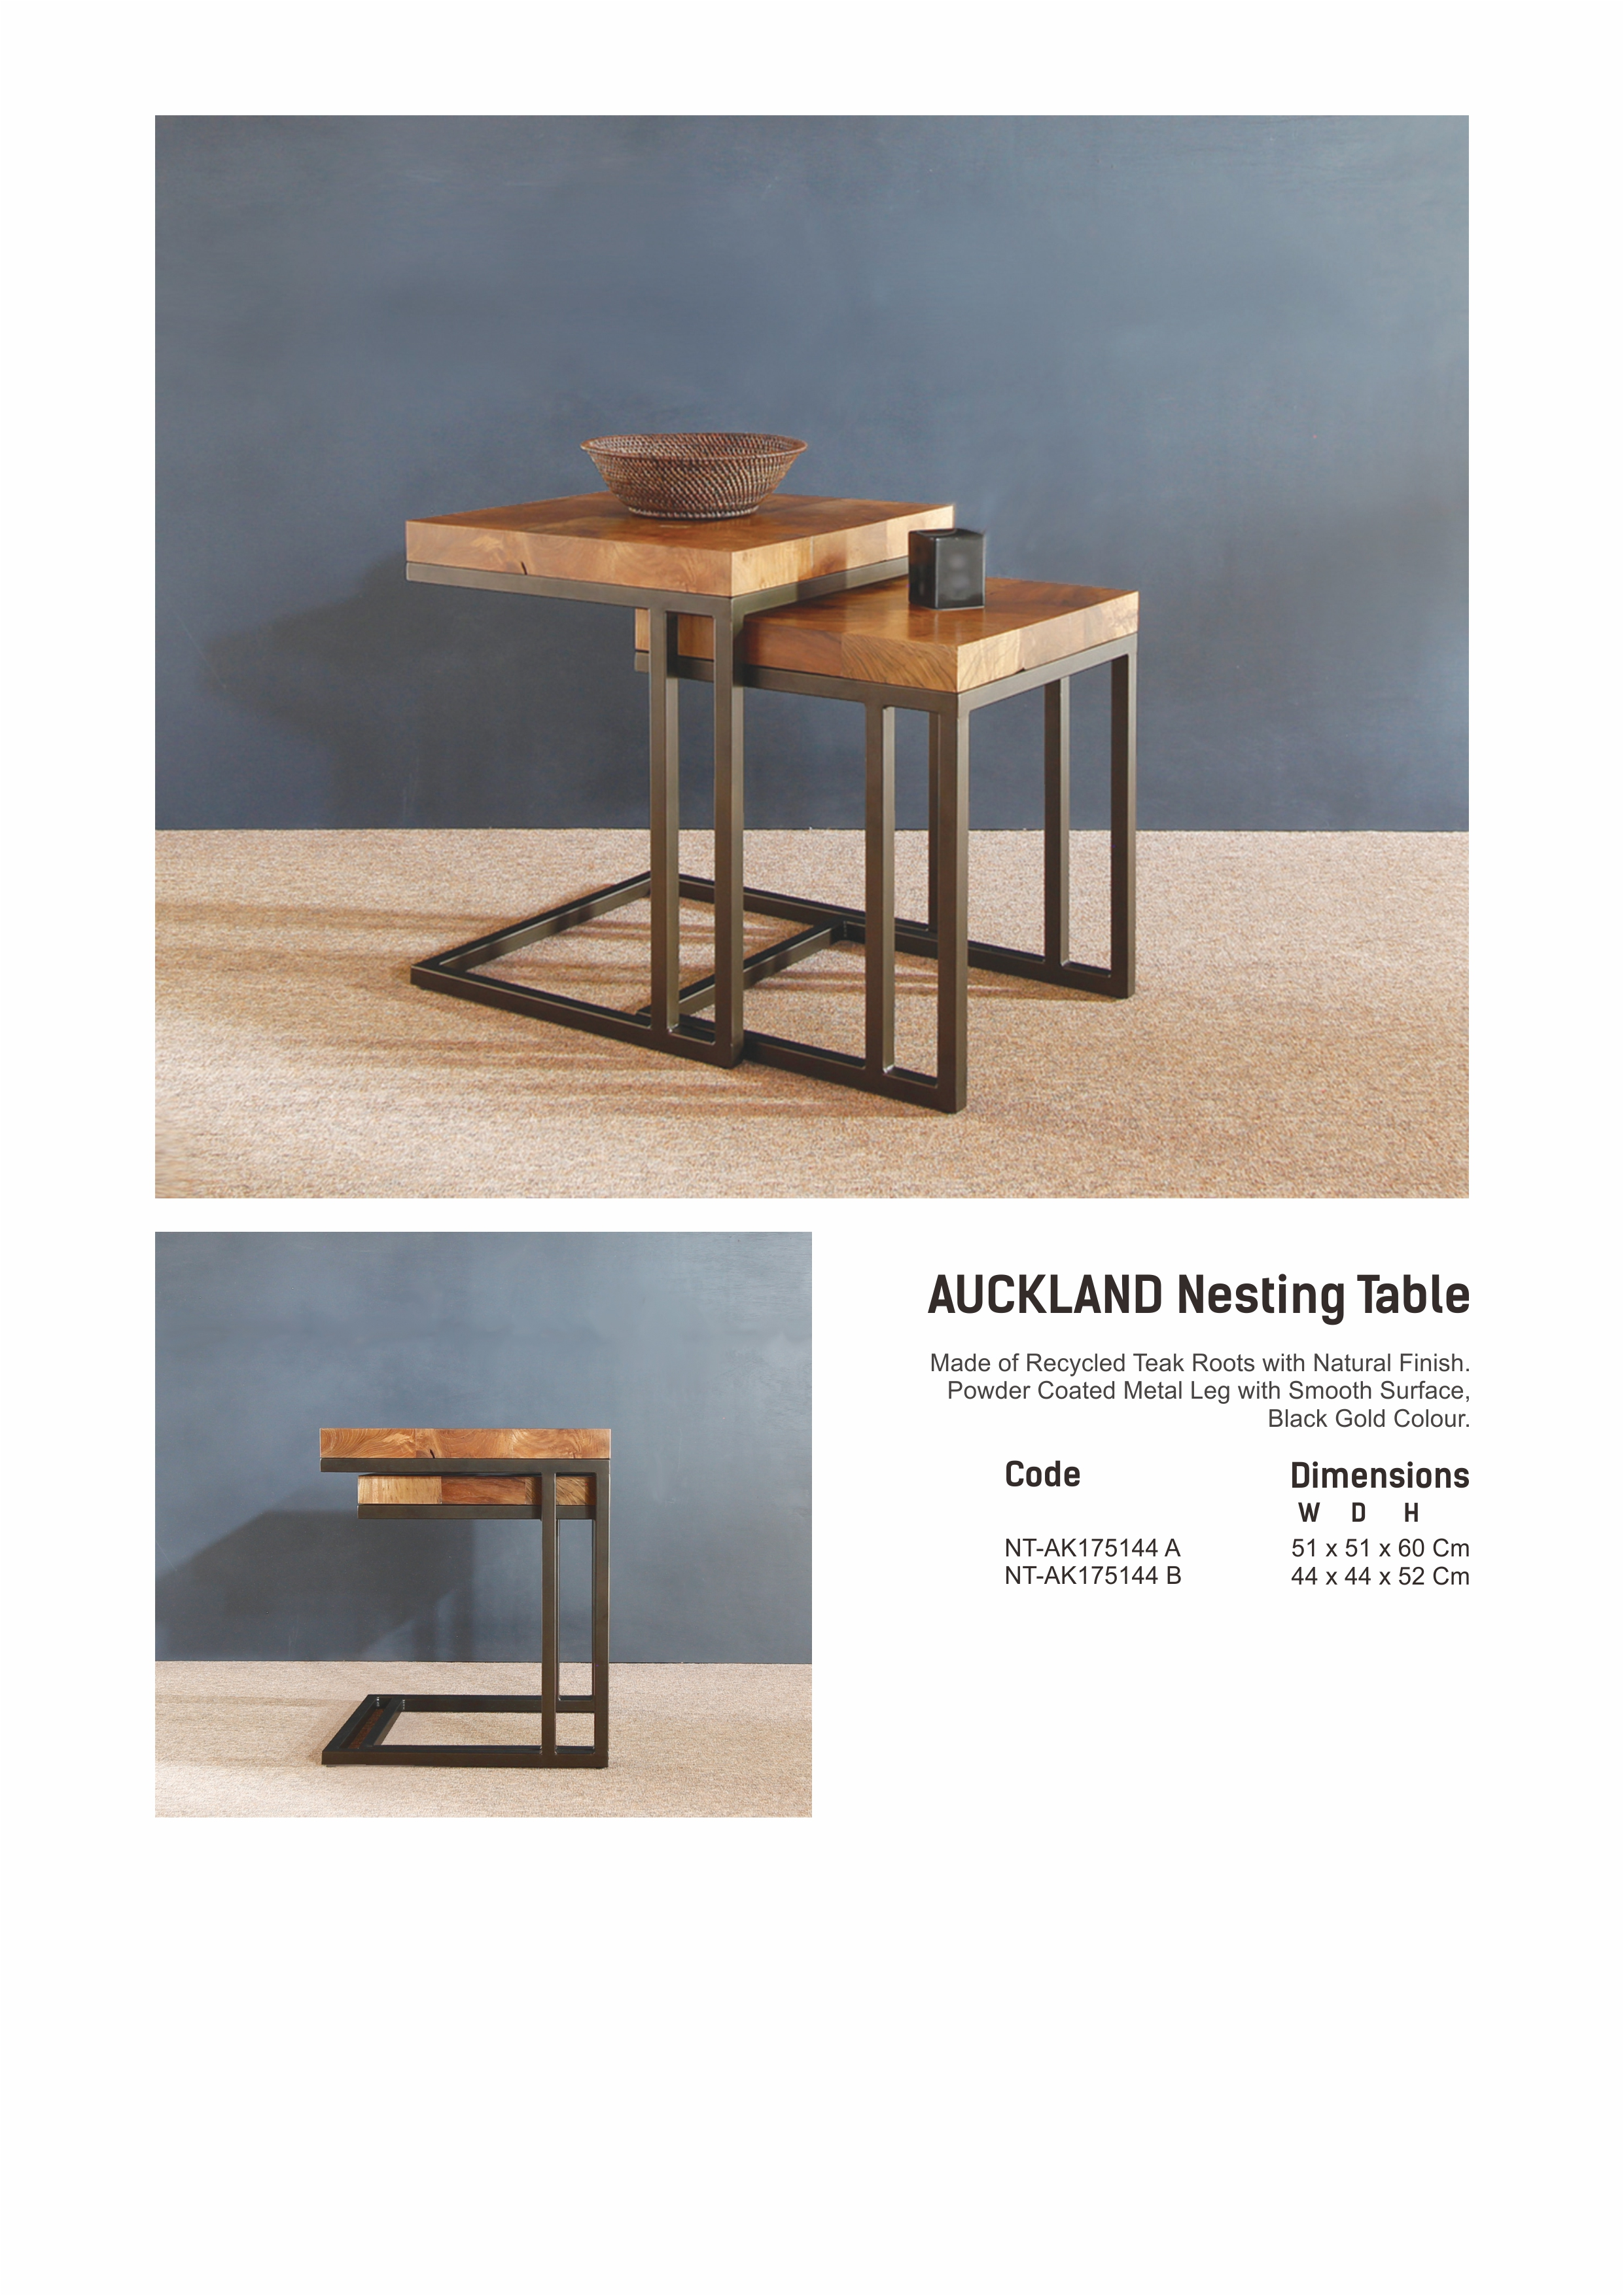 17. AUCKLAND Nesting Table